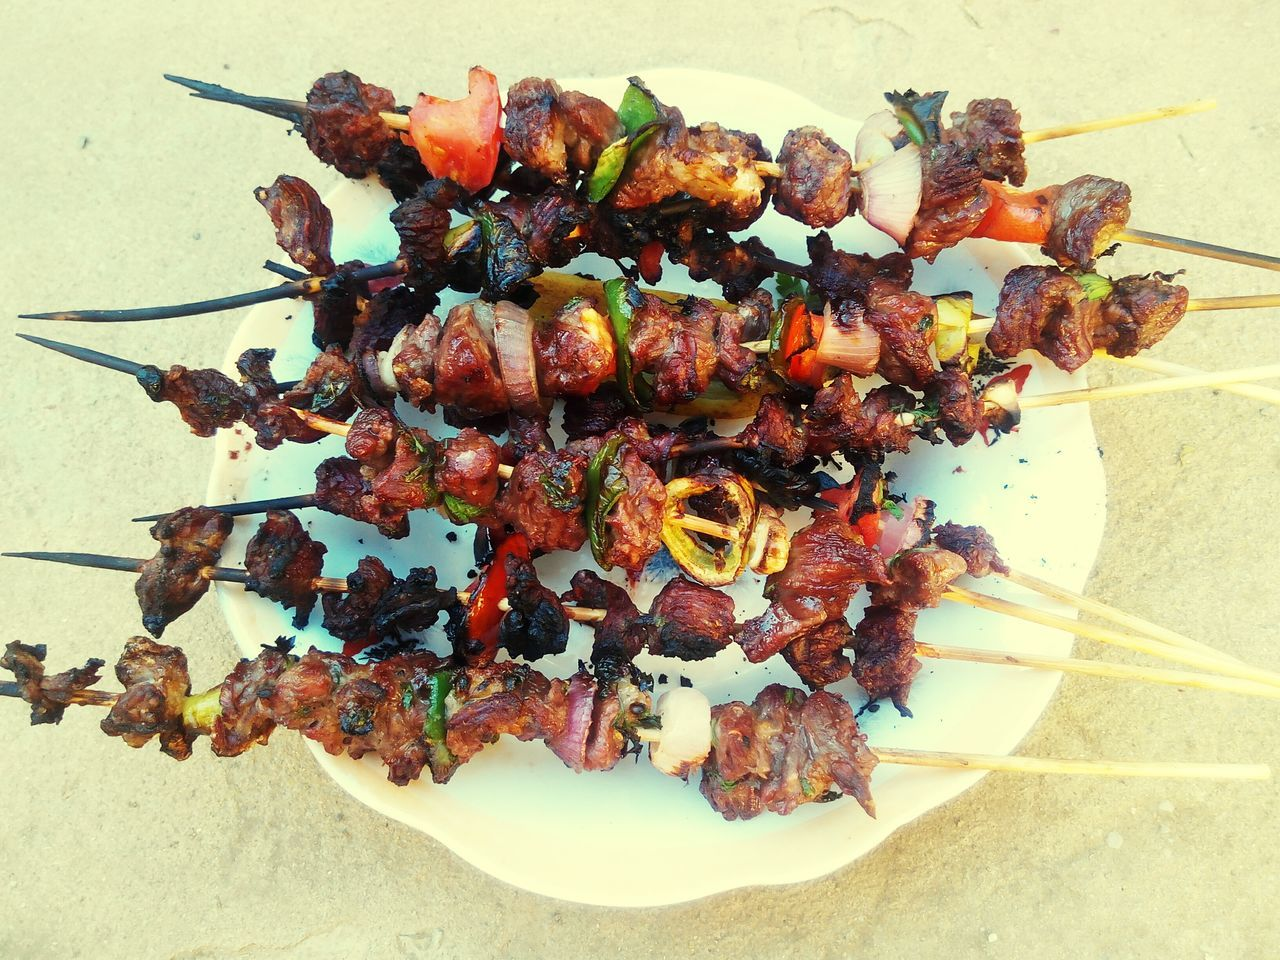 Close-Up Of Meat Skewers Served In Plate On Table